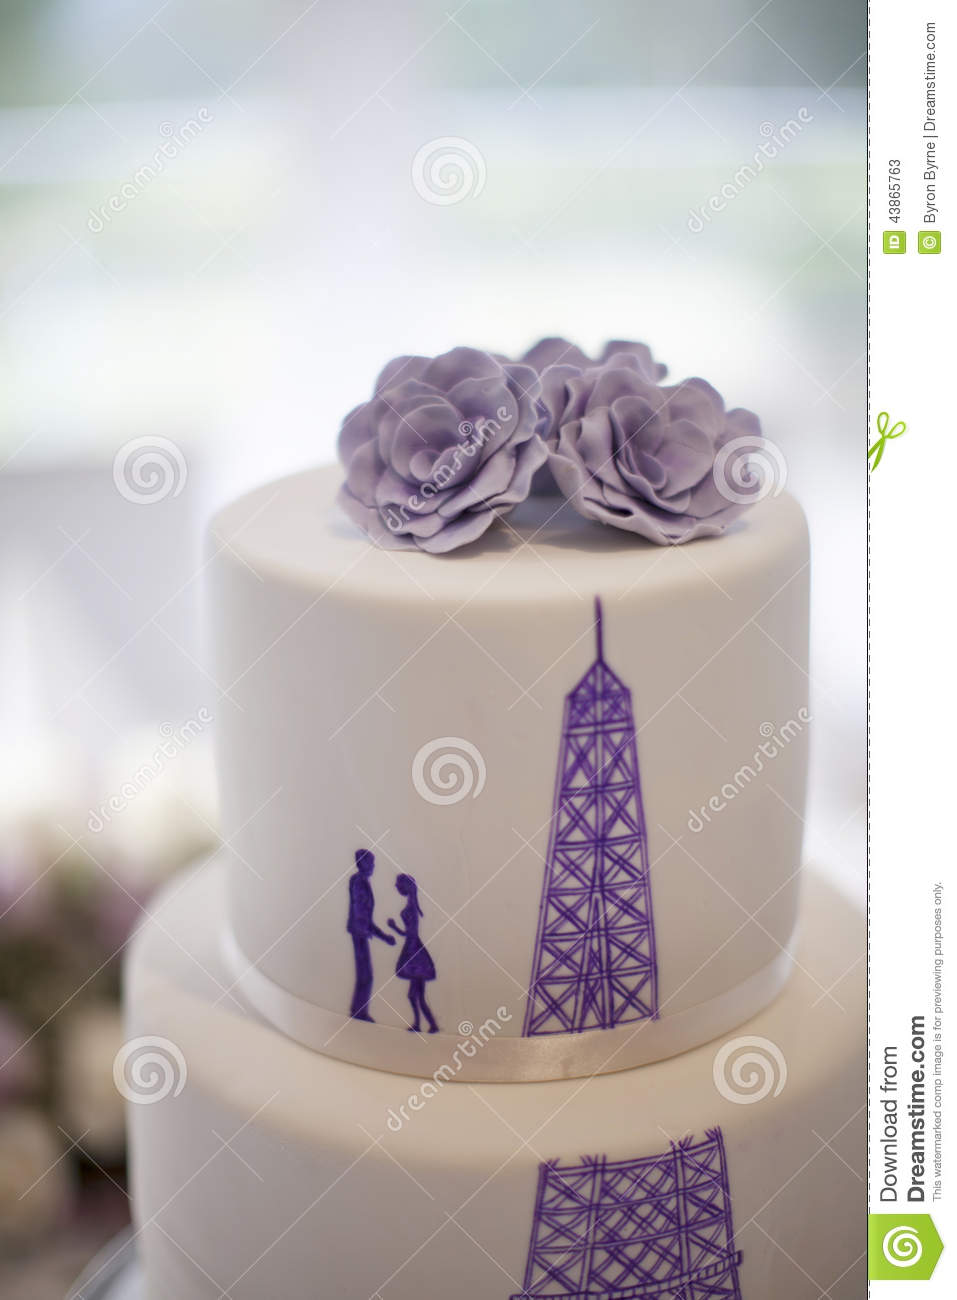 Wedding Cake Close-up With Silhouette Of A Couple And The Eiffel ...